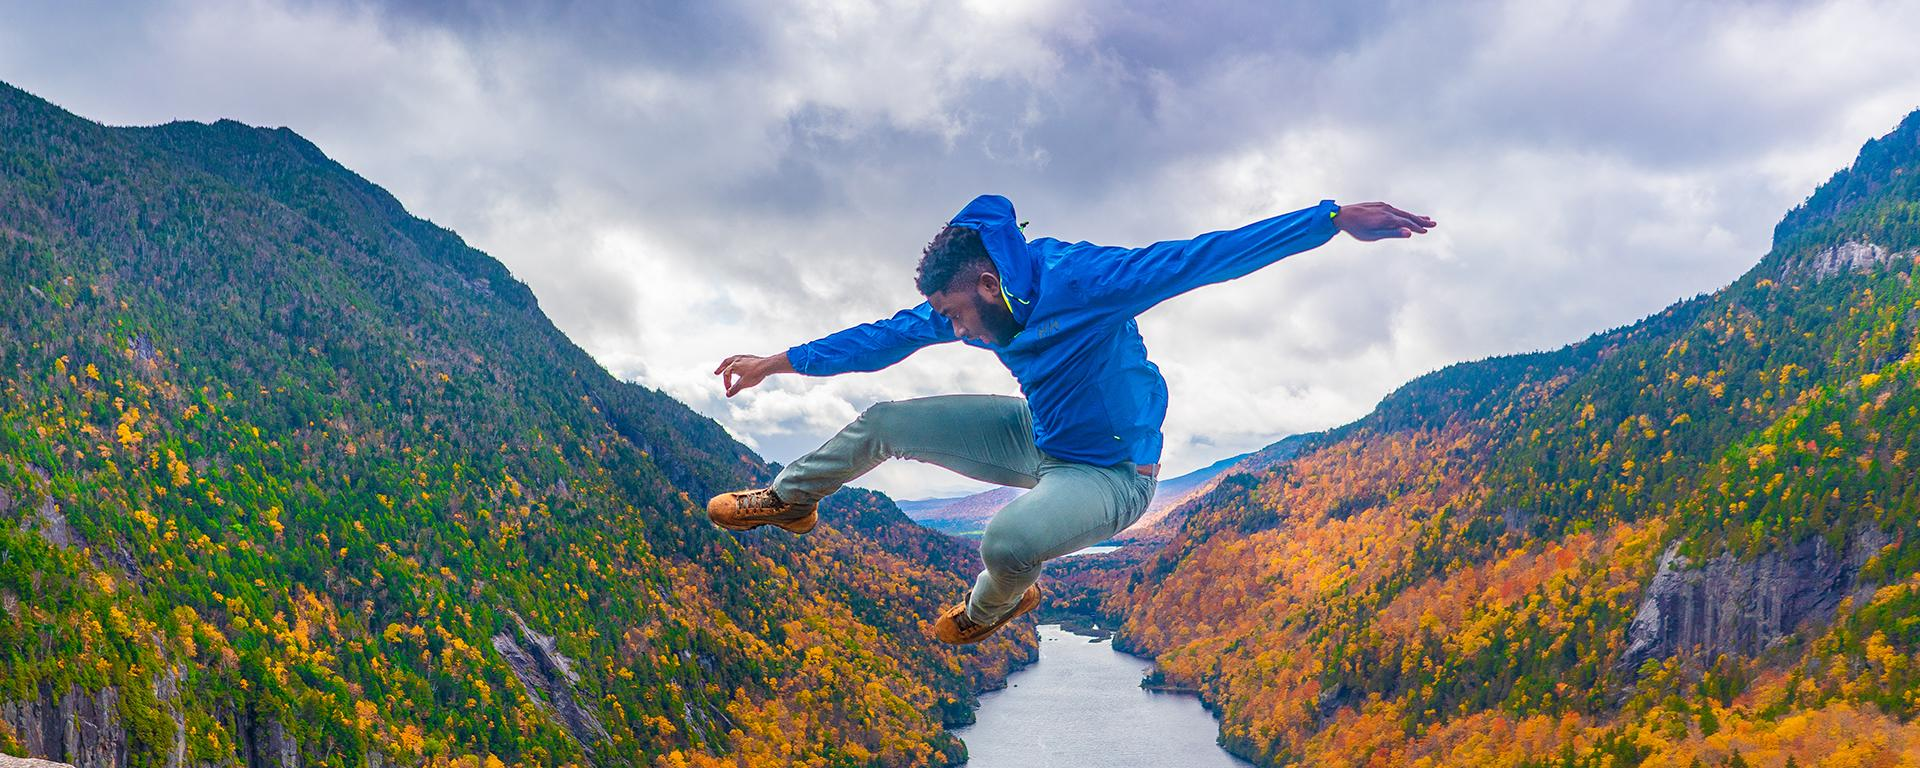 Mic-Anthony Hay jumps in front of fall foliage in the Adirondacks